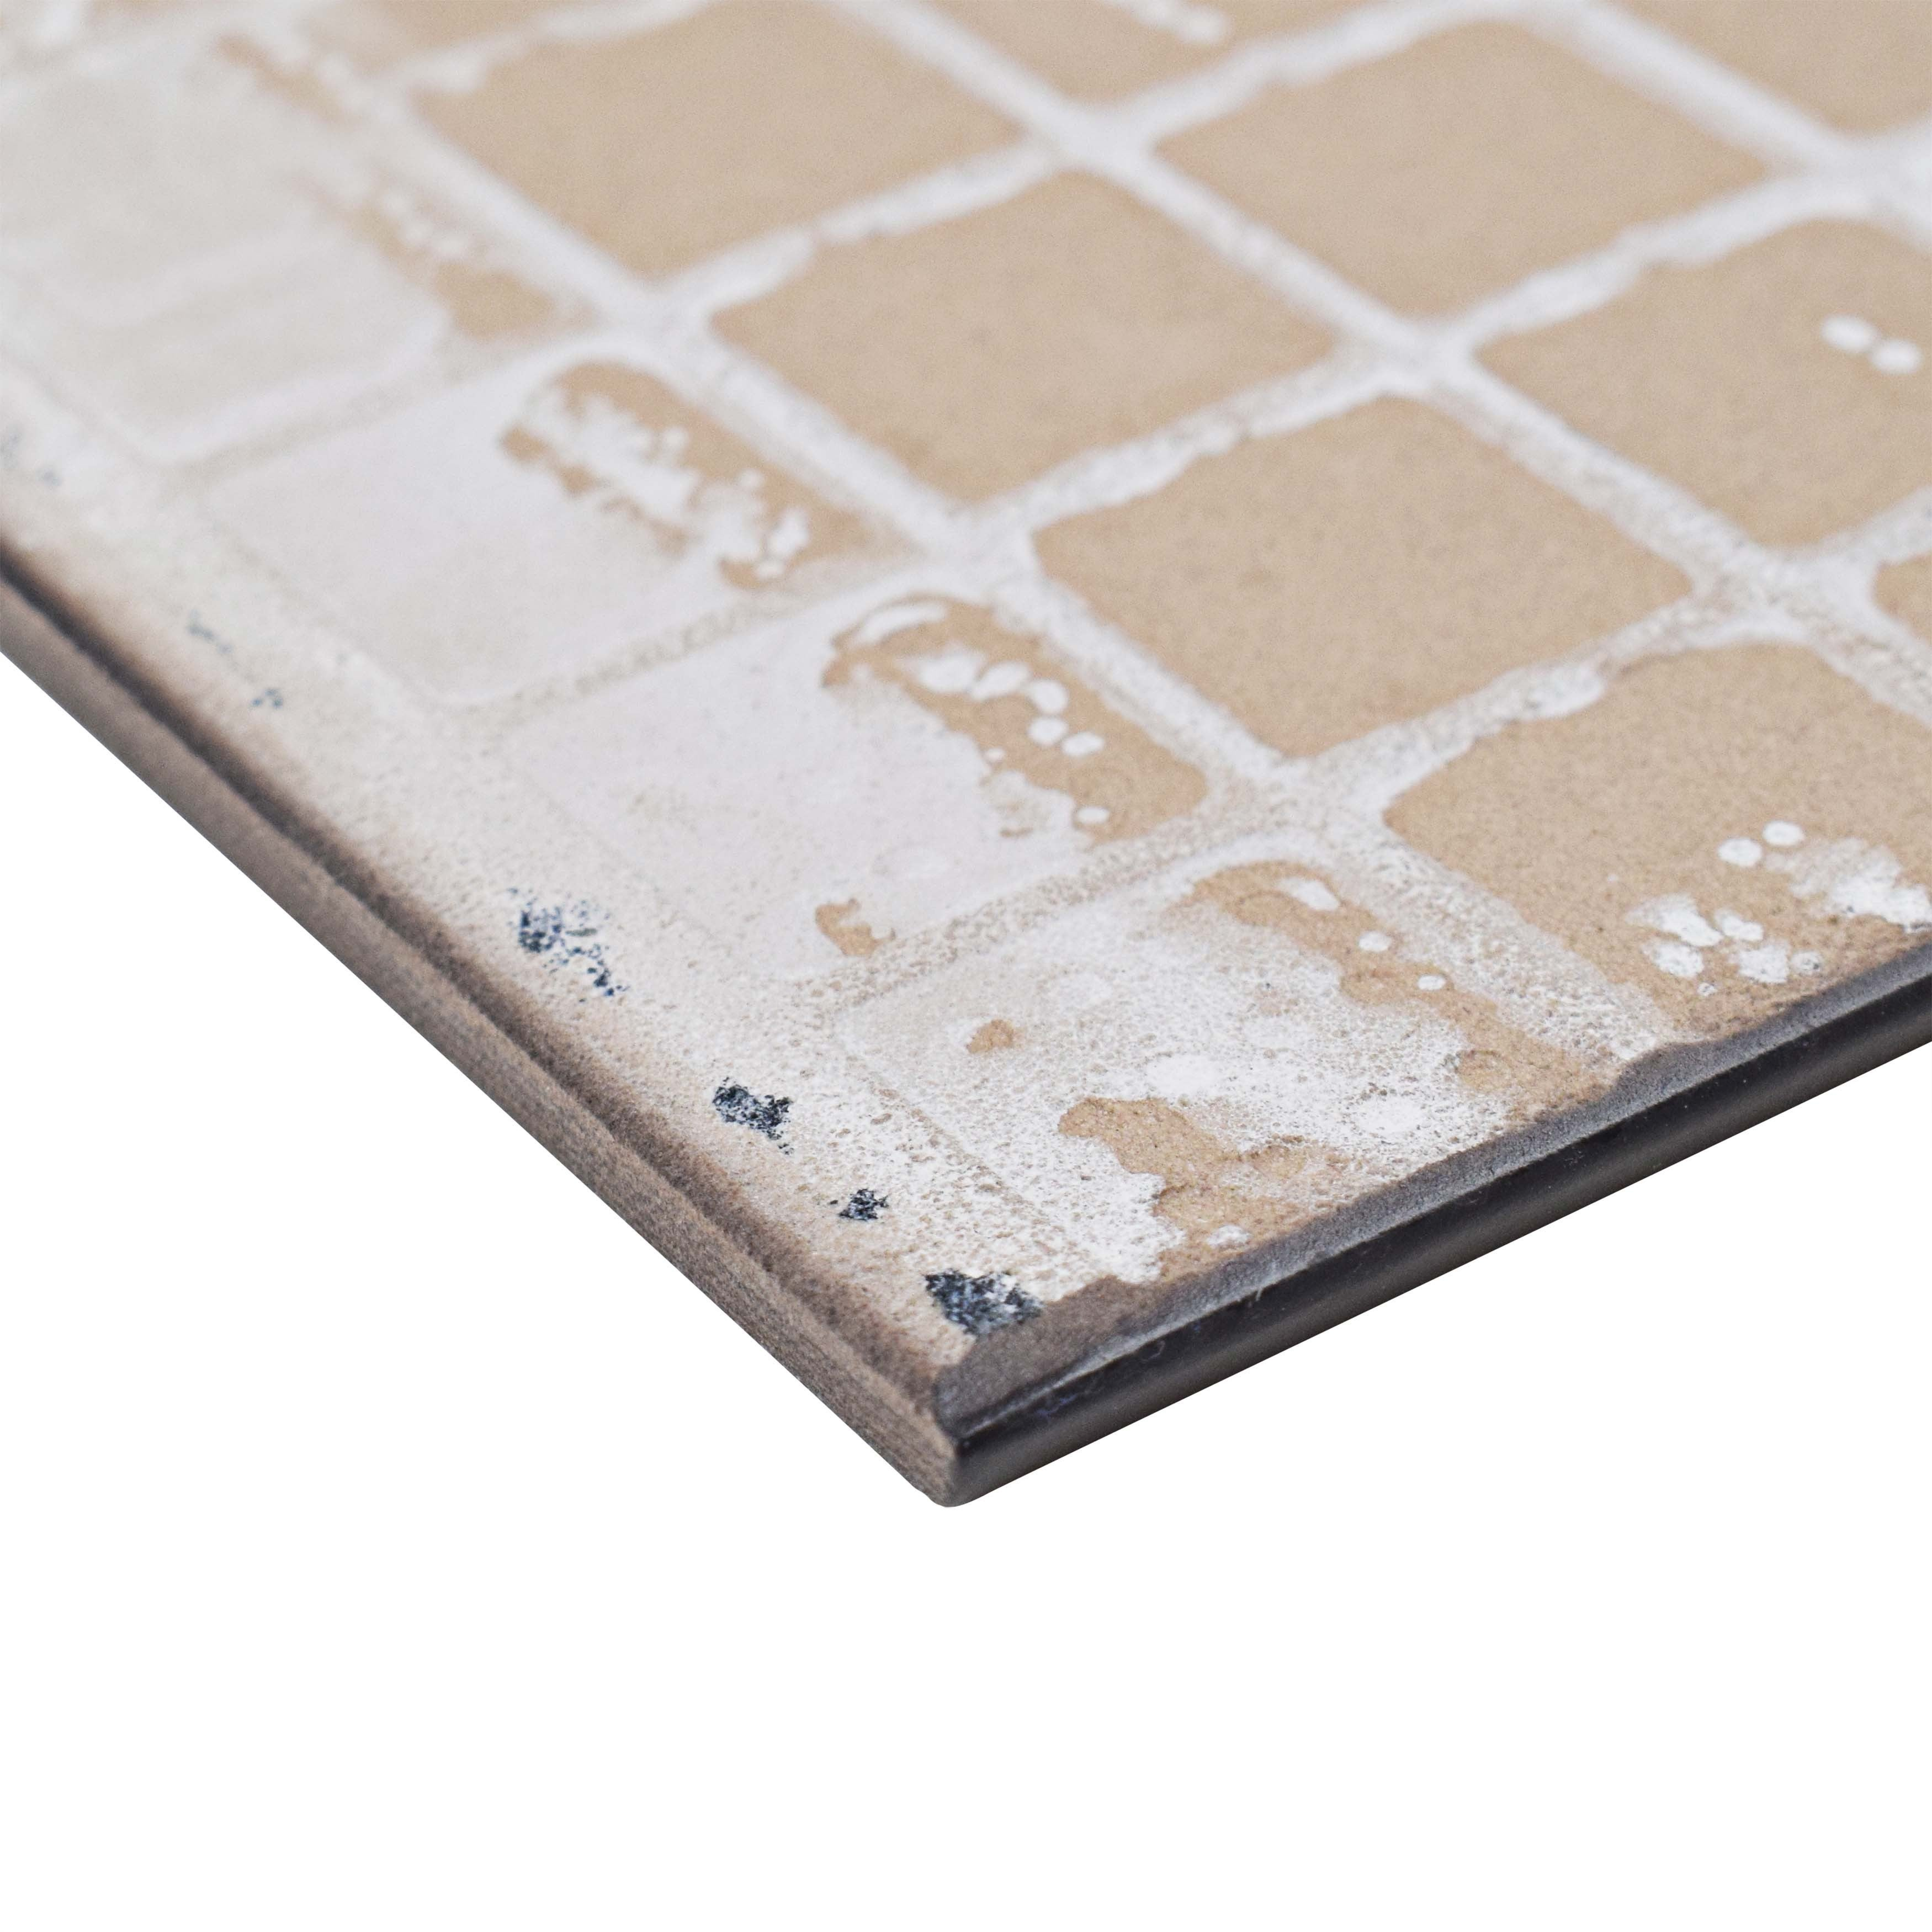 Awesome 12X12 Ceiling Tiles Home Depot Big 16X32 Ceiling Tiles Clean 24 X 48 Ceiling Tiles 2X4 Subway Tile Young 6 X 12 Subway Tile Gray6 X 6 Tiles Ceramic Bullnose Ceramic Tile   Columbialabels